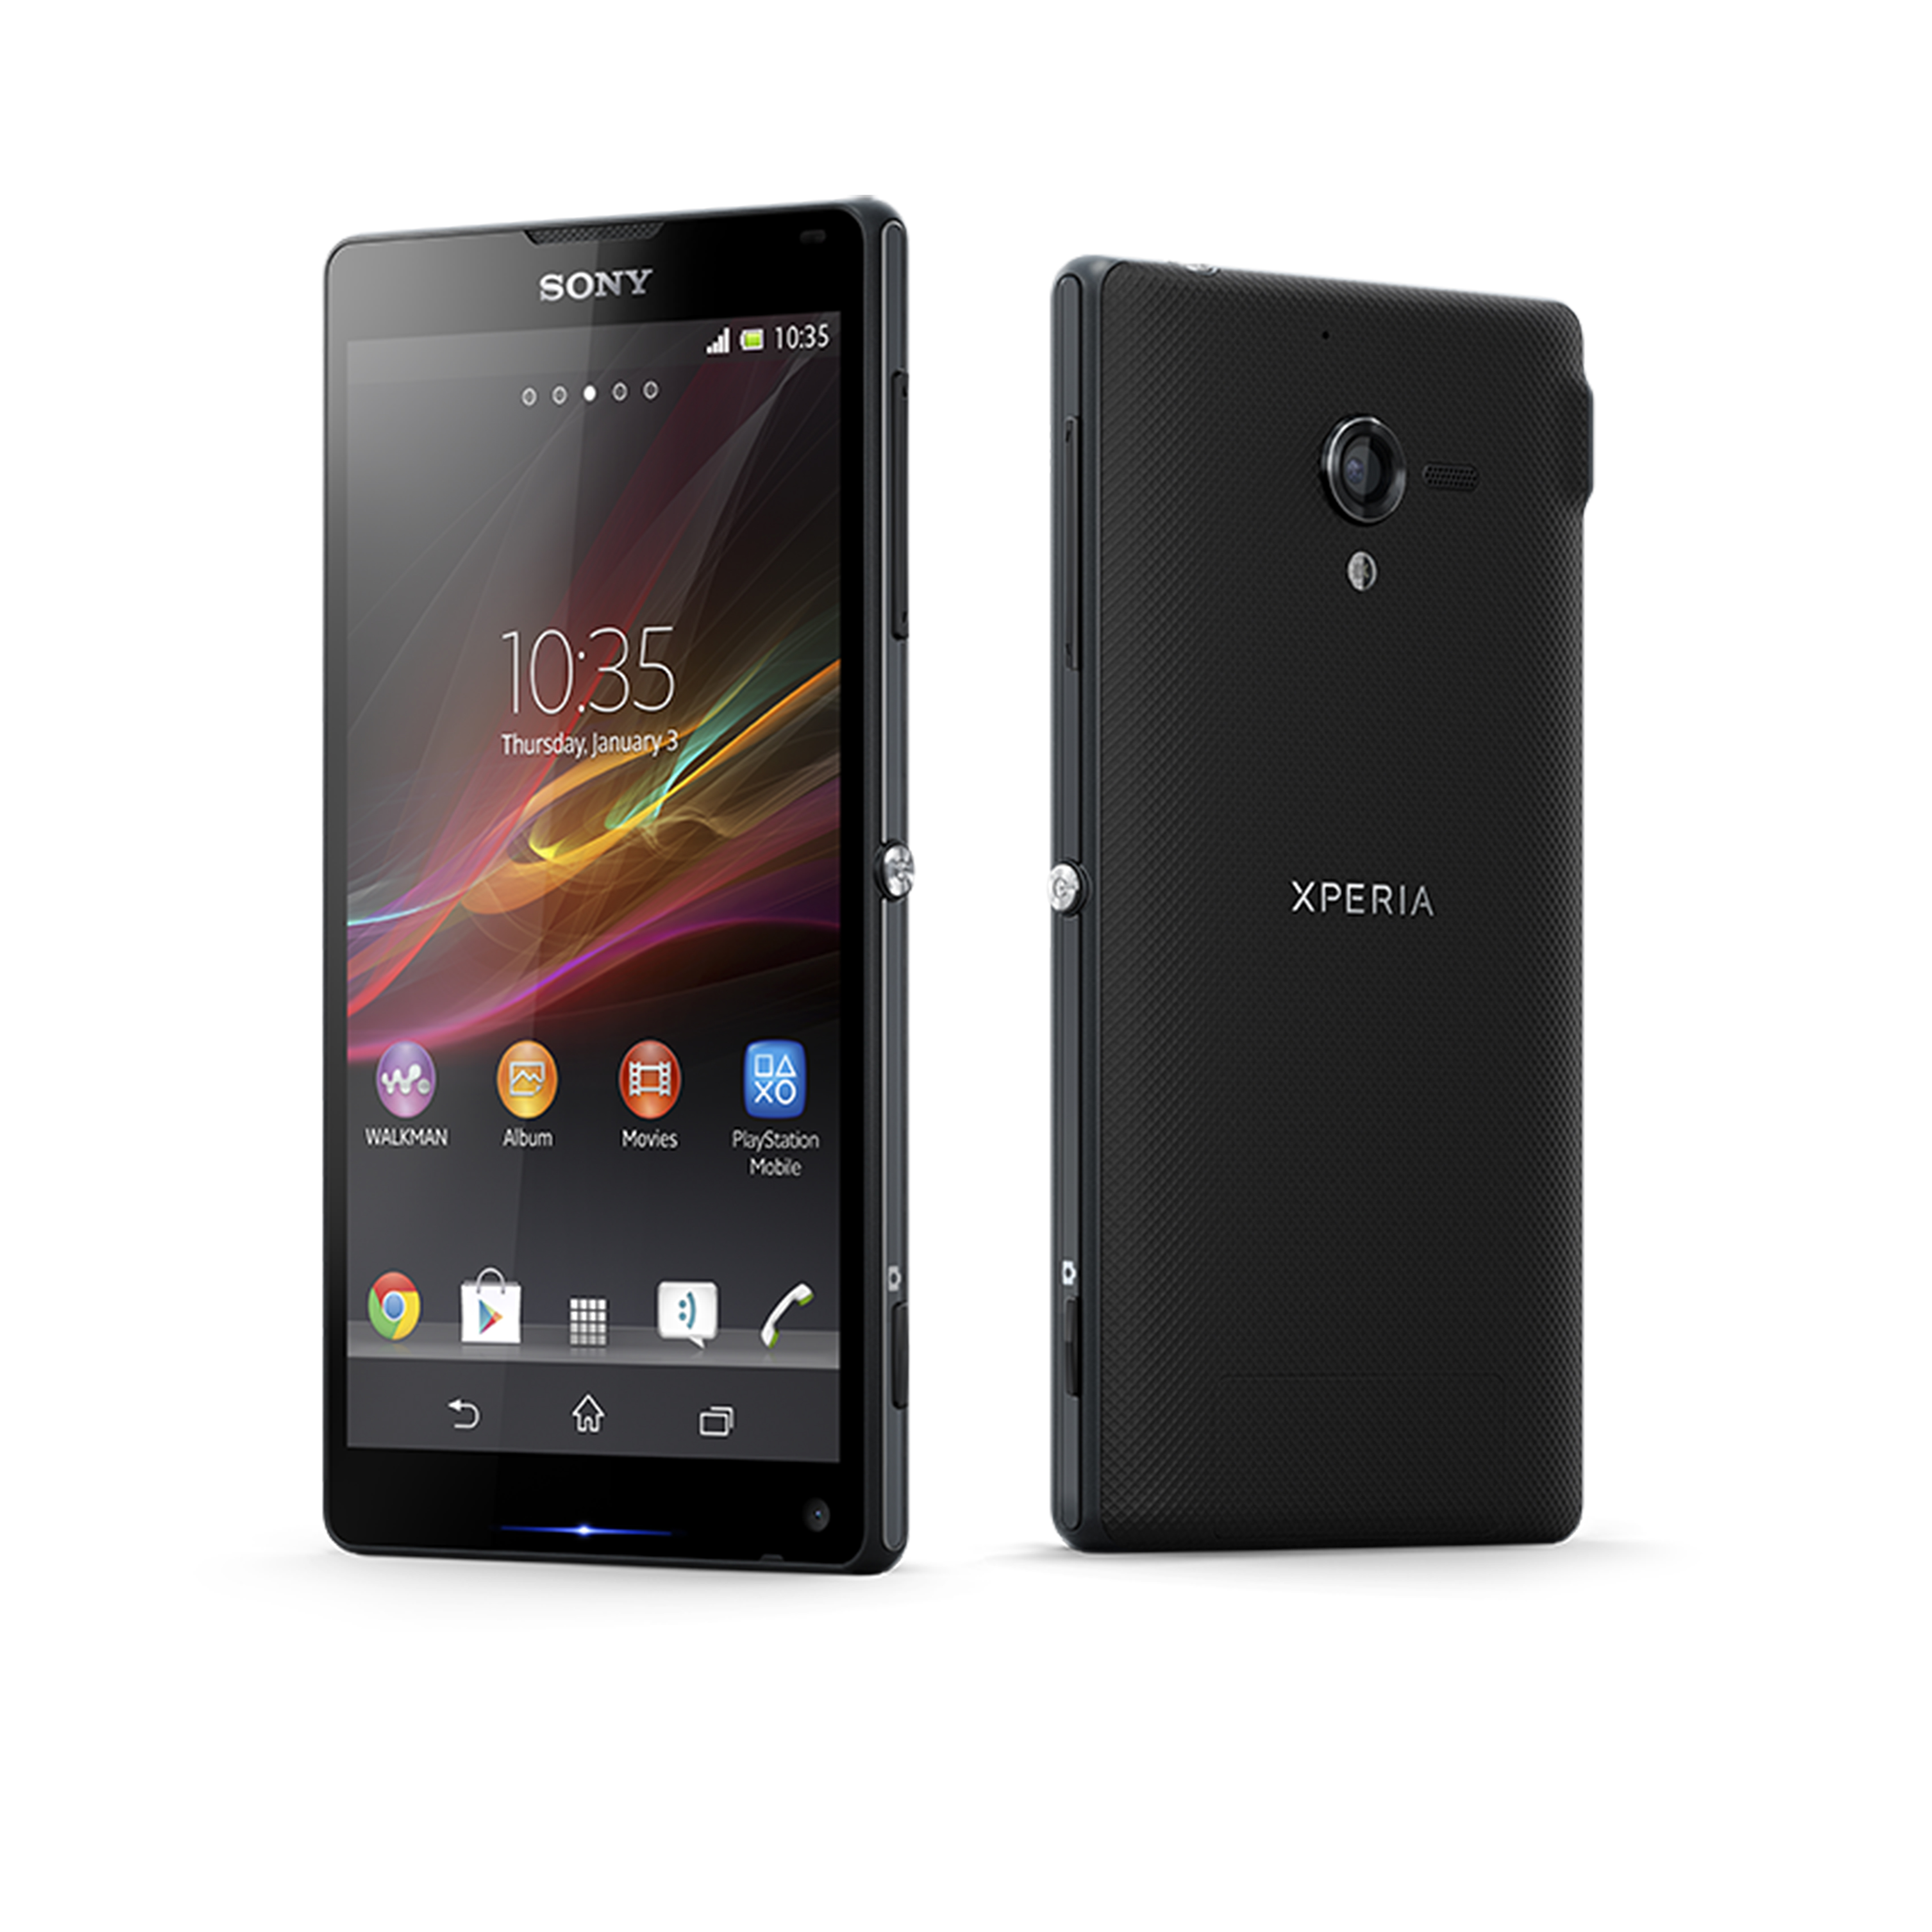 Introducing Xperia™ Z –the best of Sony in a premium smartphone